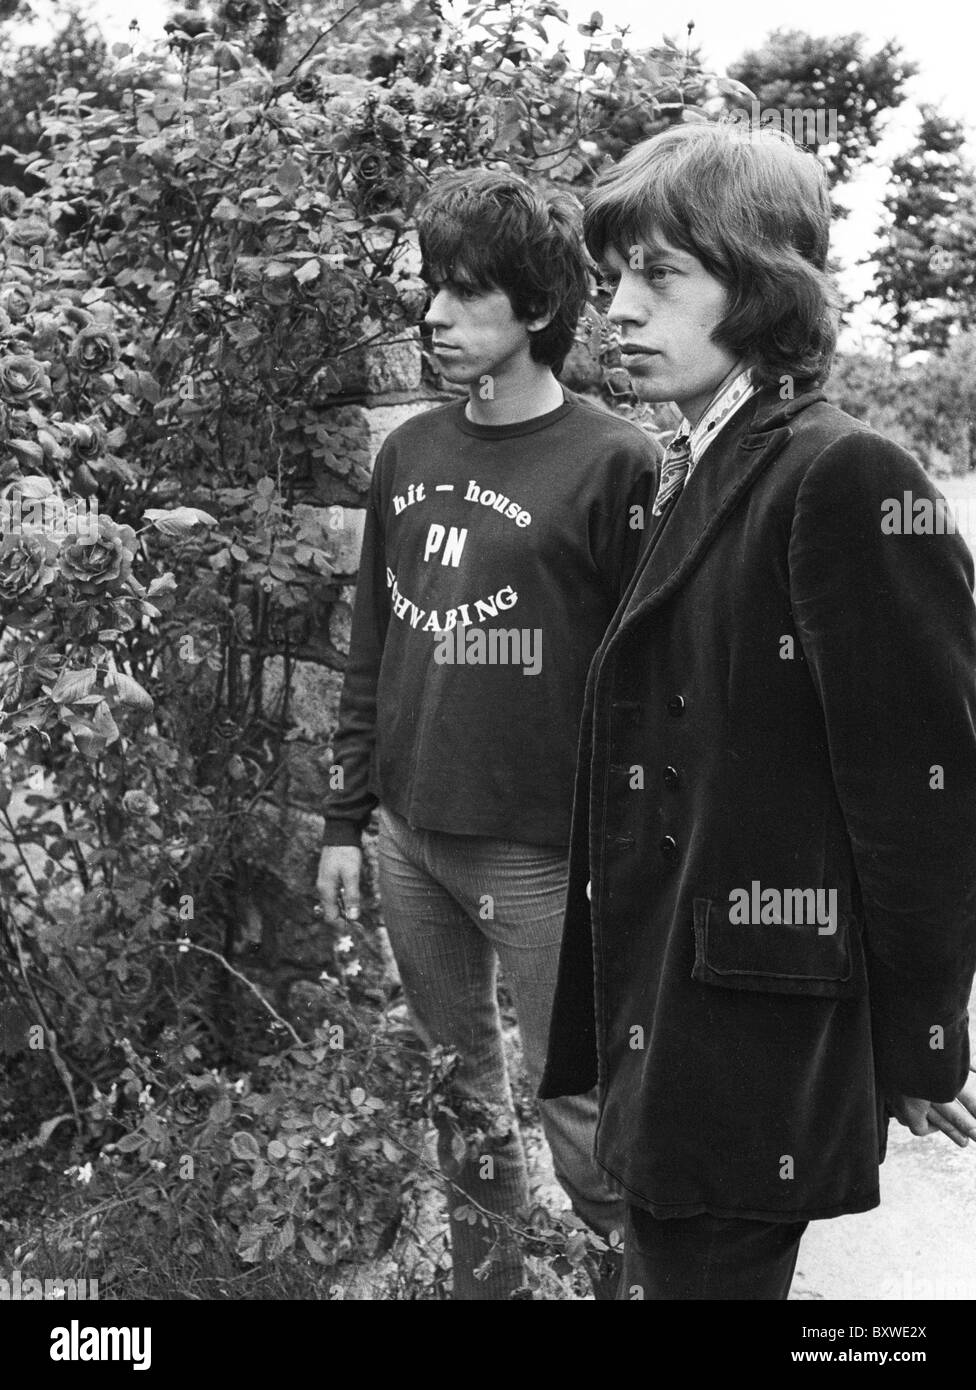 Keith Richards and Mick Jagger exclusive image from 1967 by David Cole in the gardens at Redlands, Richards' - Stock Image